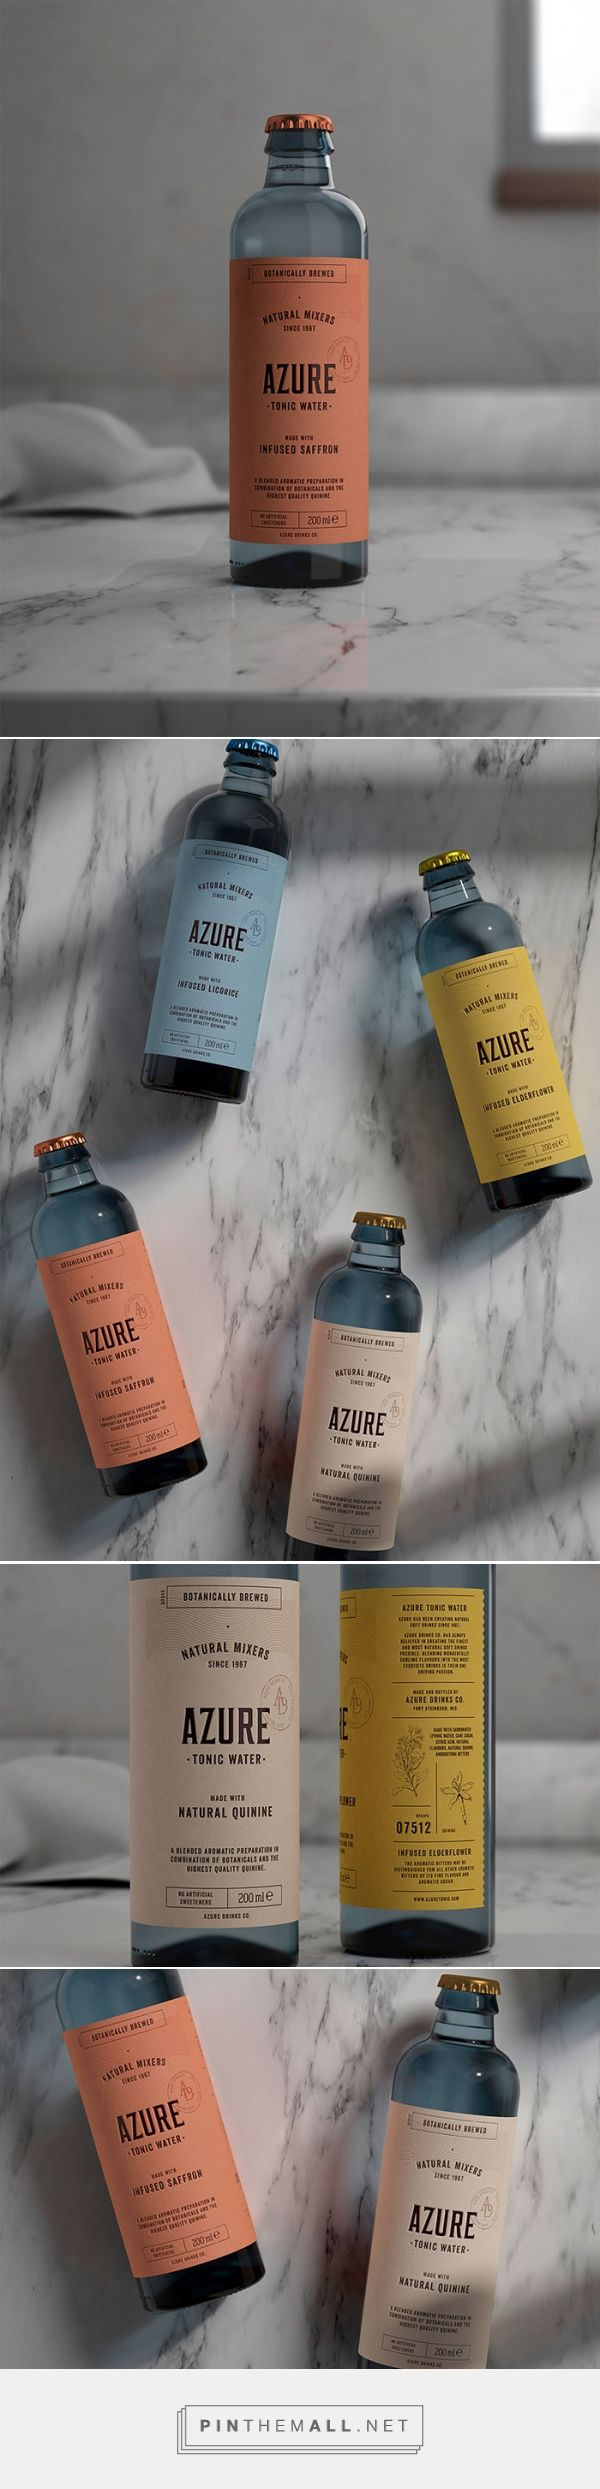 Packaging Design Azure Tonic Water by Pep Bernat Vizcaya. Source: Daily Package Design Inspiration. Pin curated by #SFields99 #packaging #design